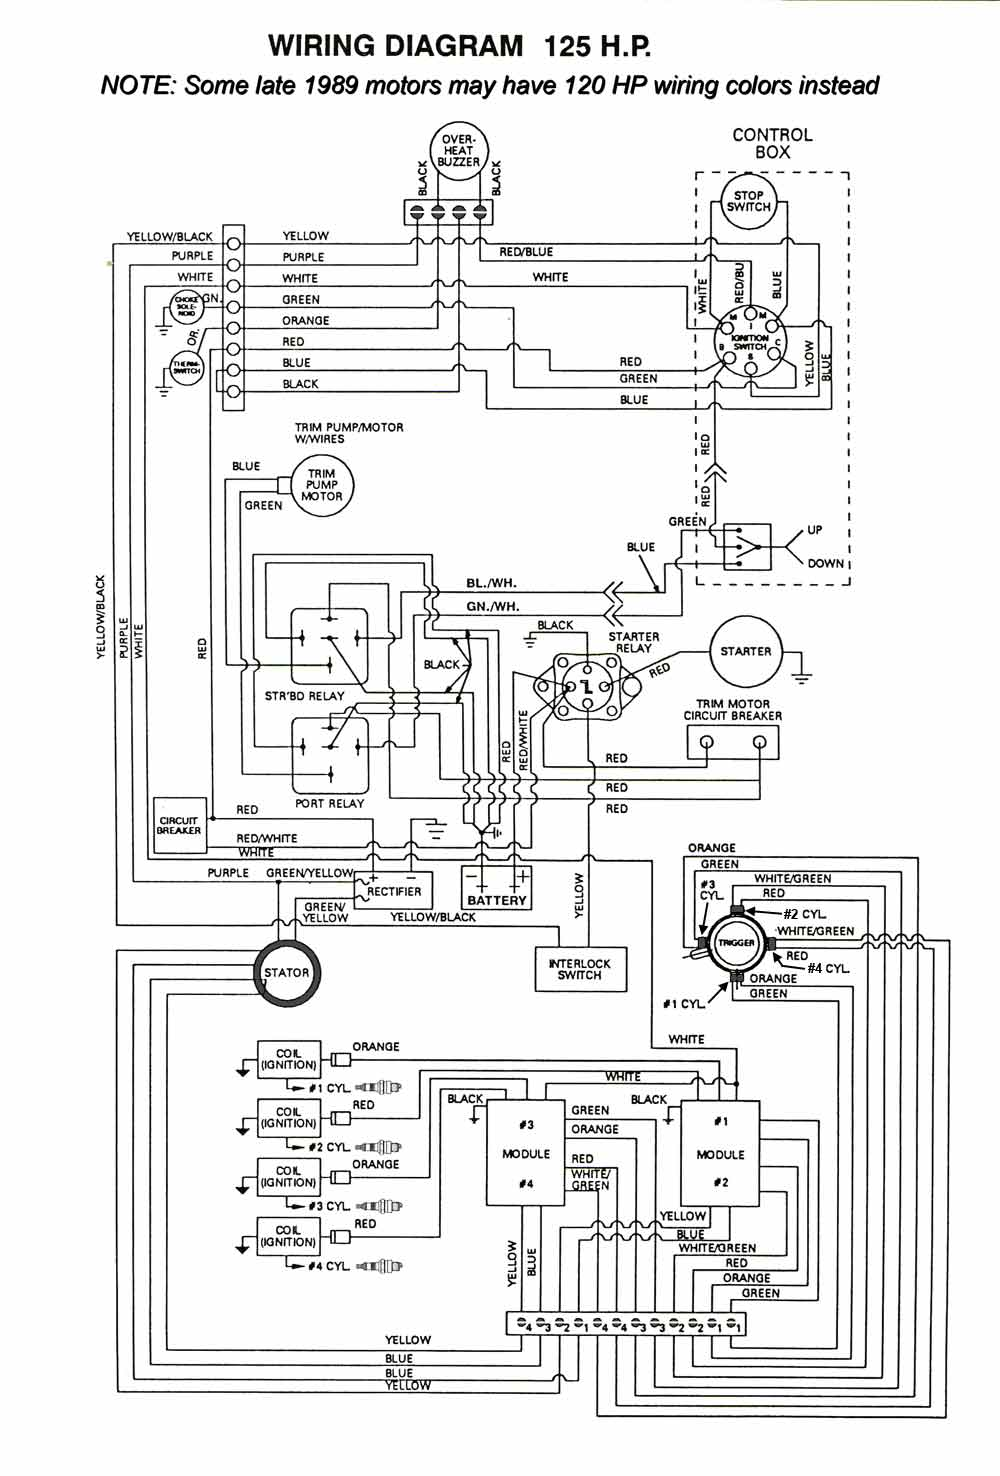 1972 Chrysler Marine 85 Wiring Another Blog About Diagram Master Tech Outboard Motor Diagrams Mastertech Rh Maxrules Com